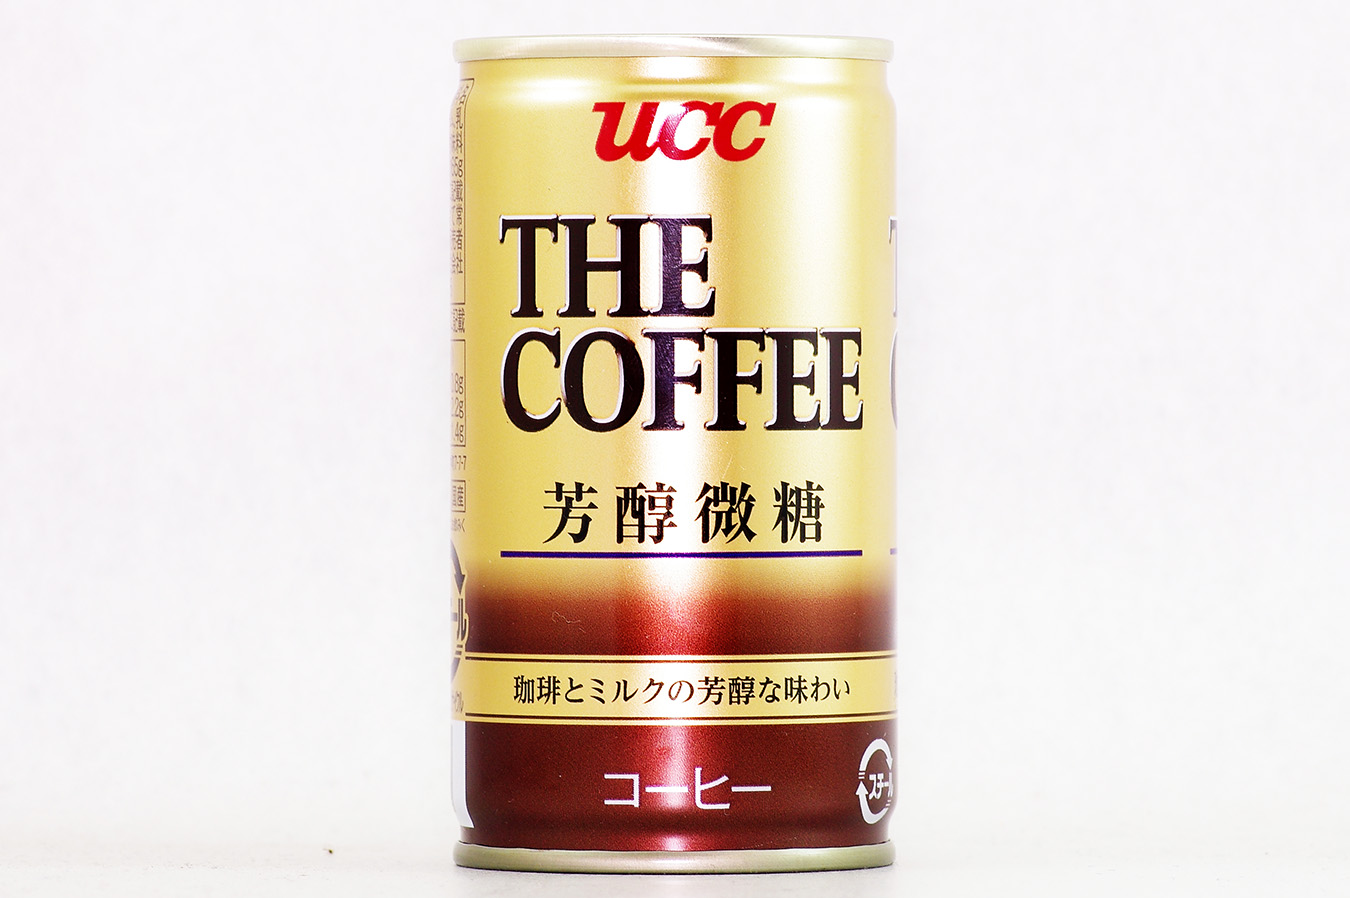 UCC THE COFFEE 芳醇微糖 2016年6月